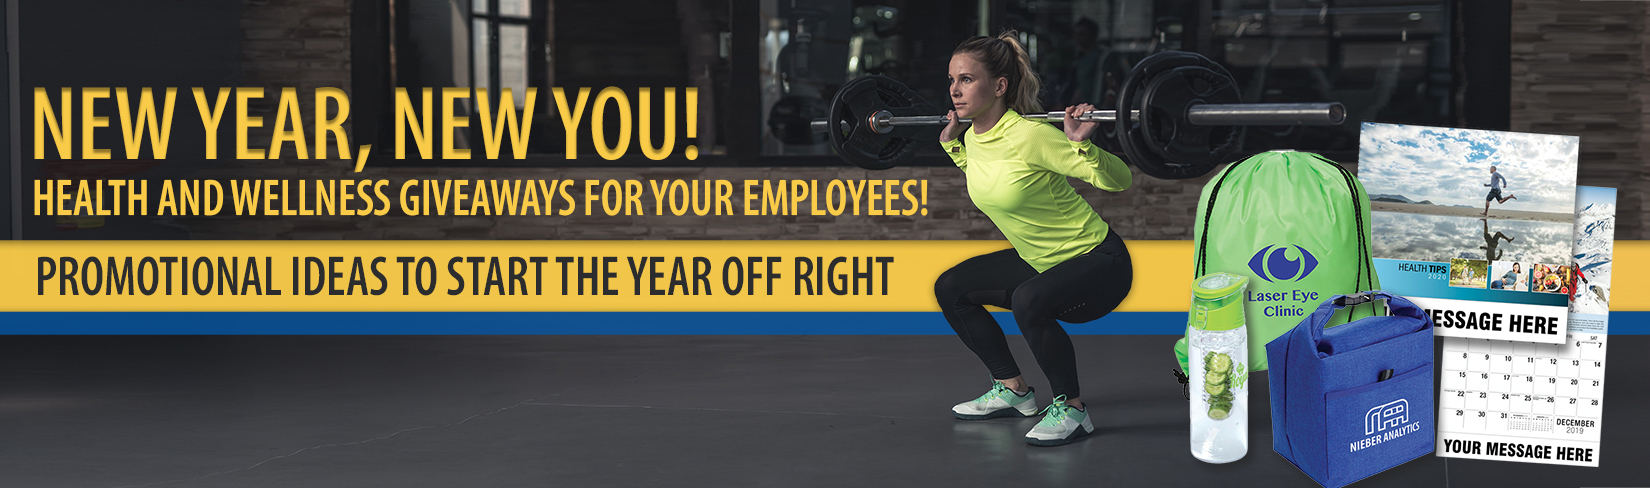 New Year, new you! Health and wellness giveaways for your employees!